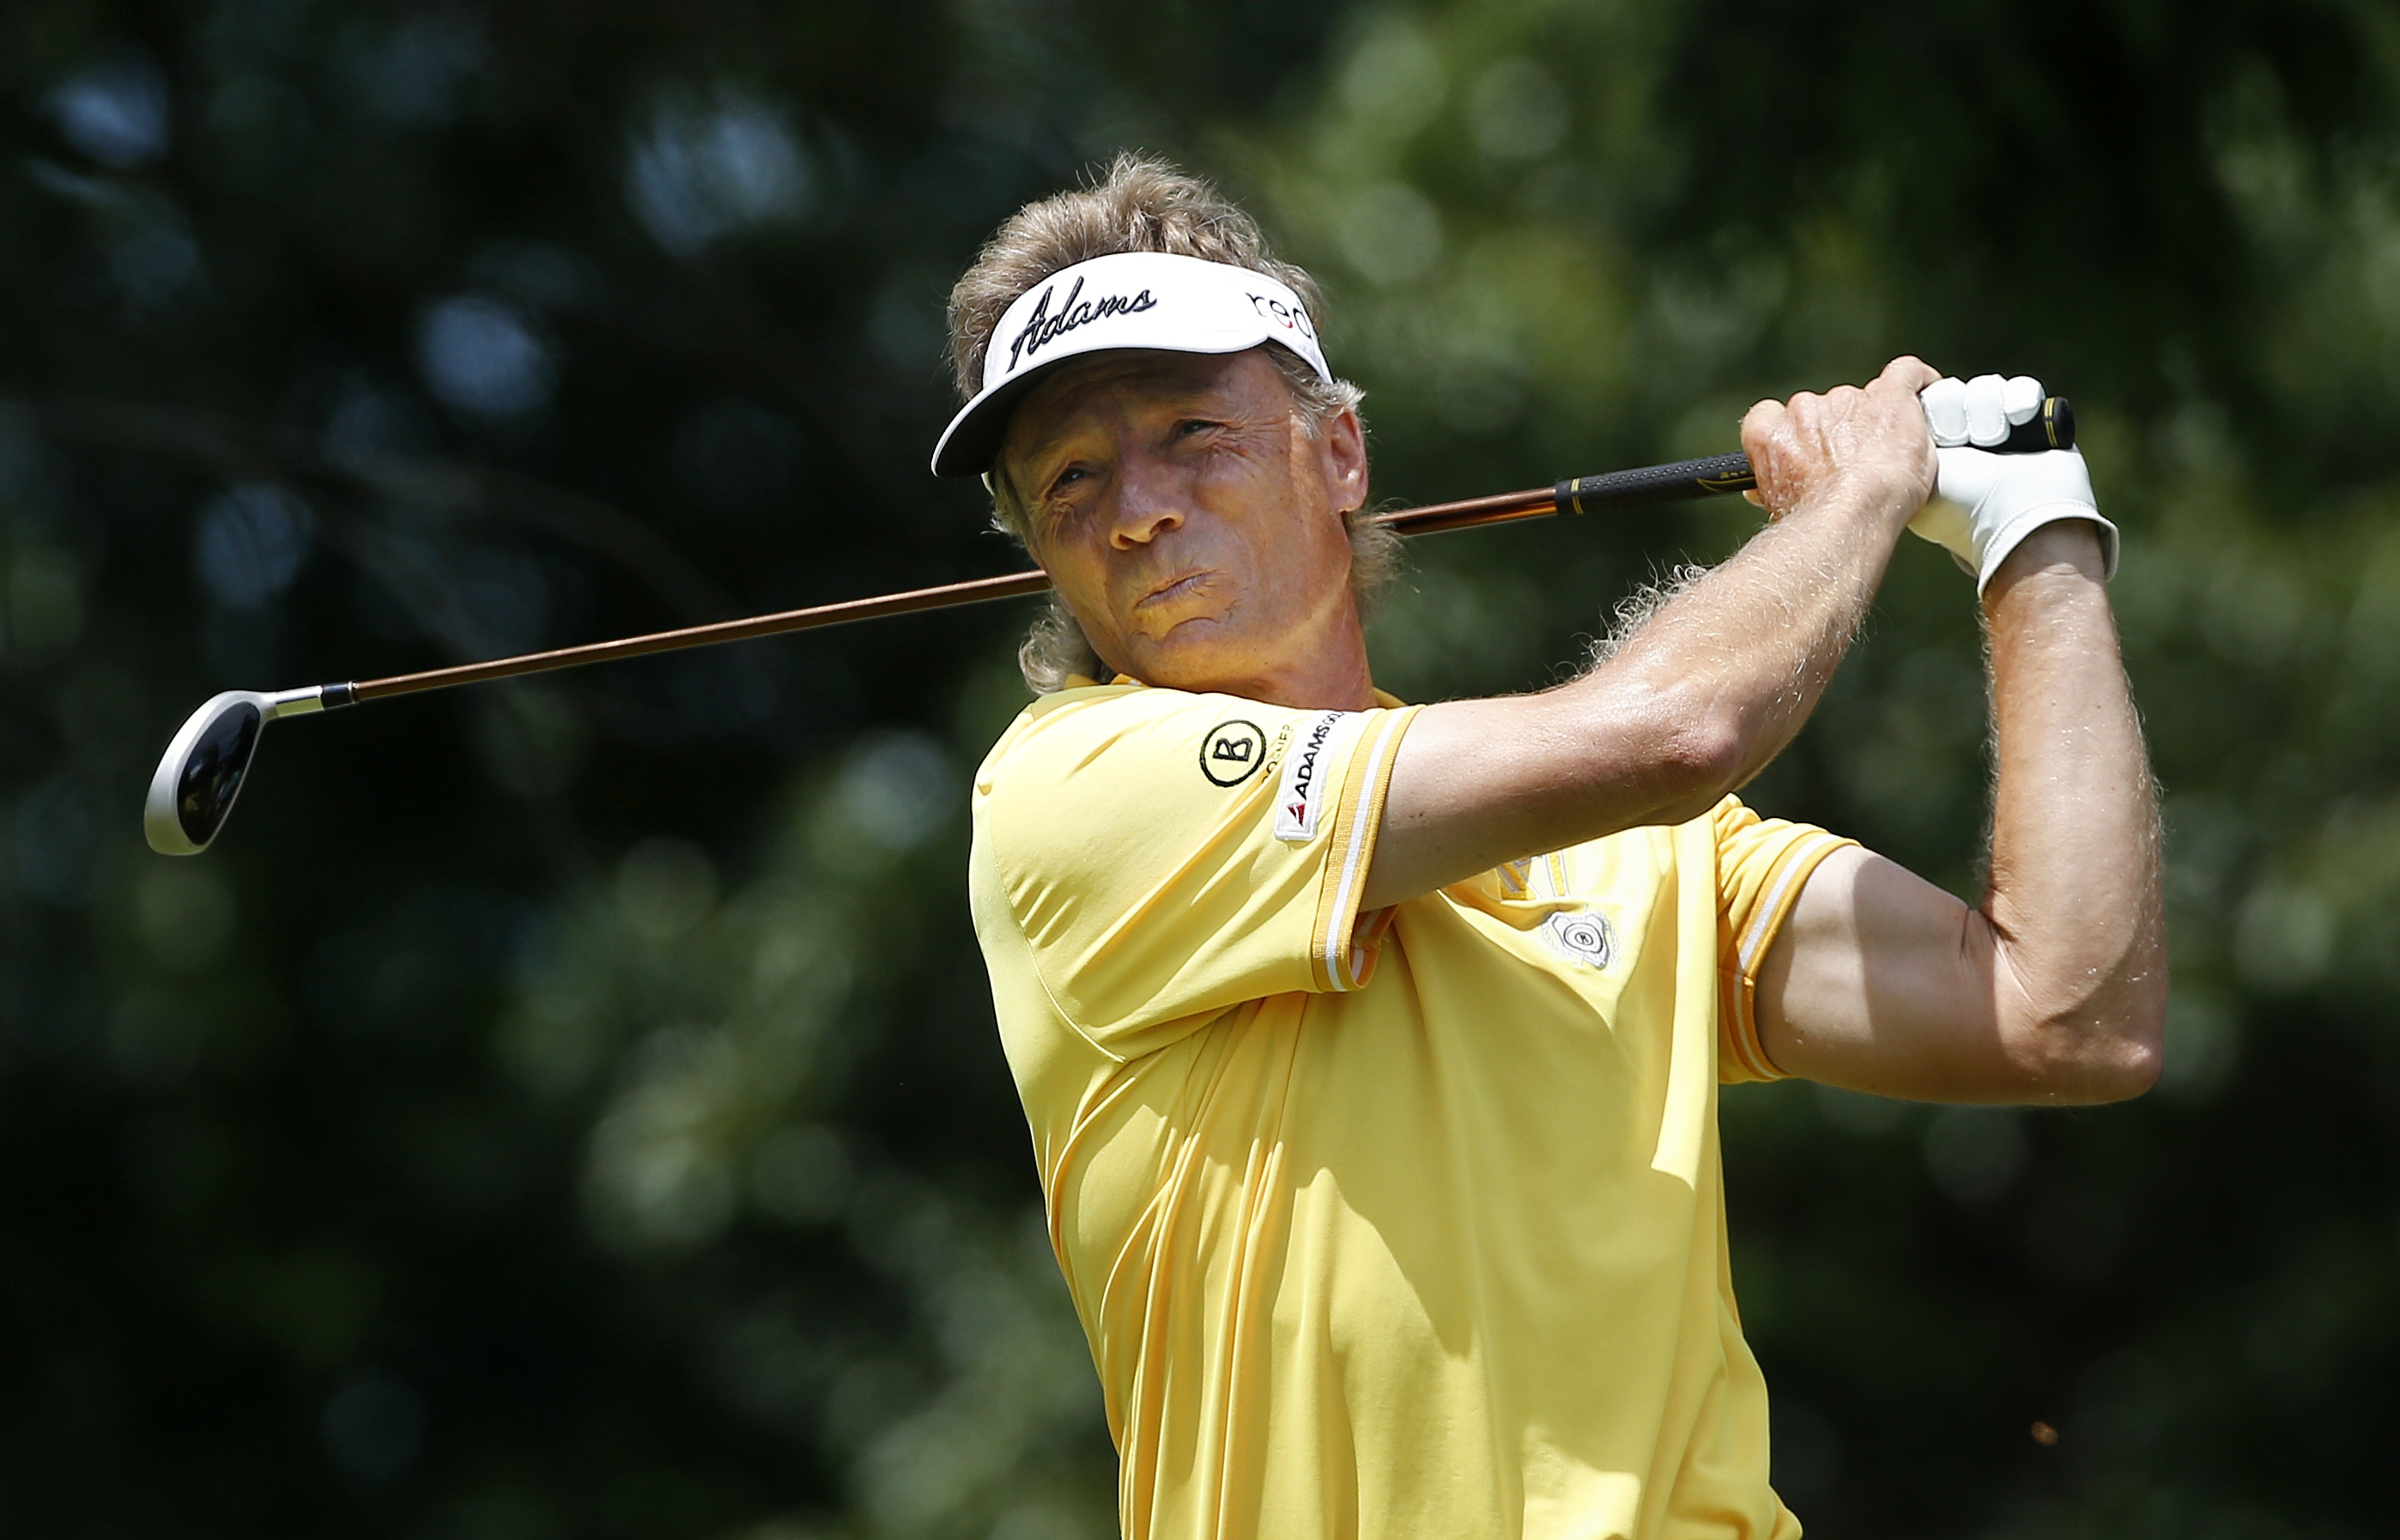 Bernhard Langer, of Germany, tees off on the second hole during the final round of the Senior Players Championship golf tournament in Belmont, Mass., Sunday, June 14, 2015. (AP Photo/Michael Dwyer)